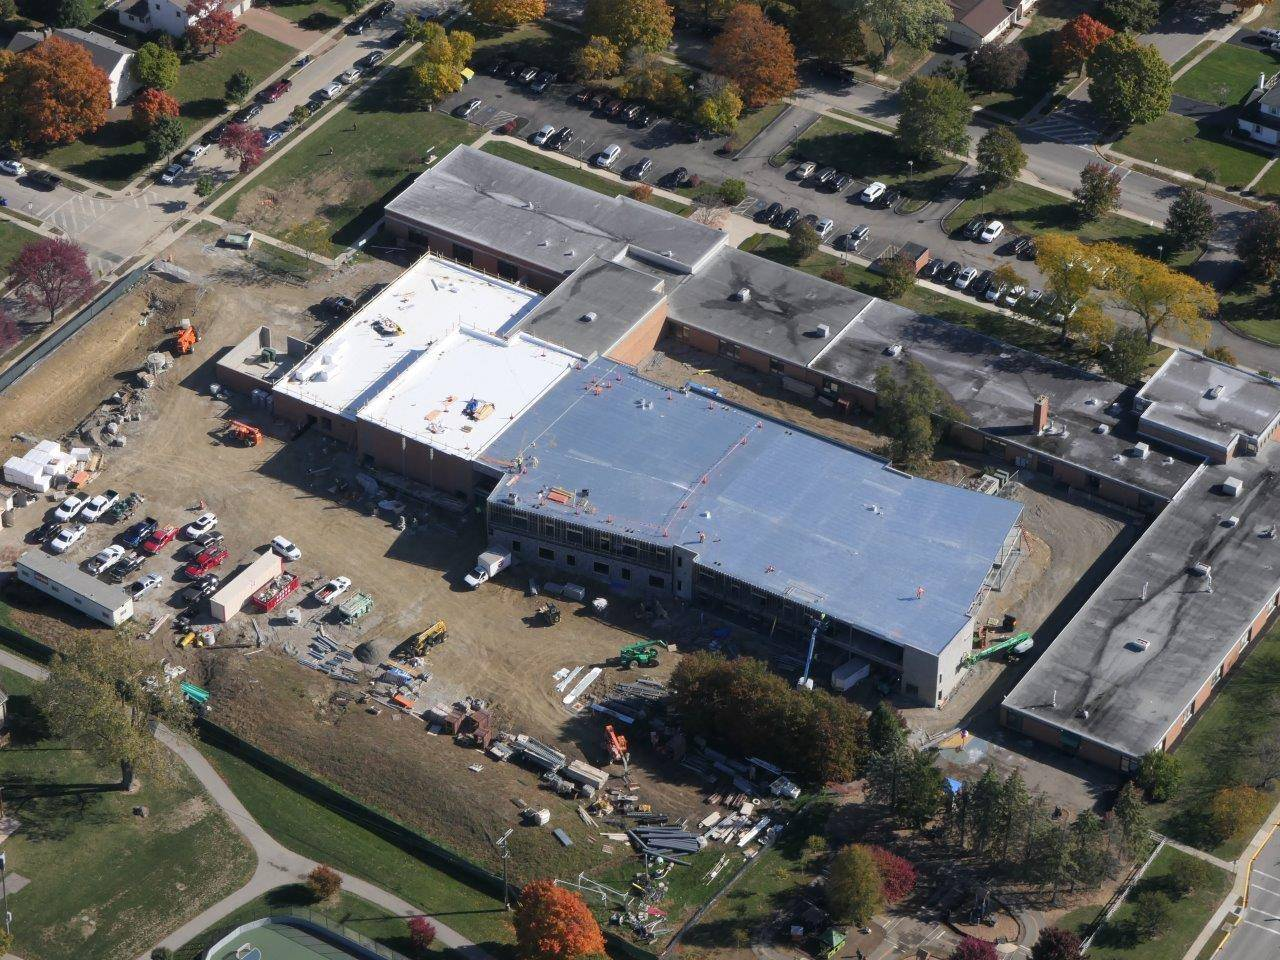 Aerial photo of the Greensview Elementary School site